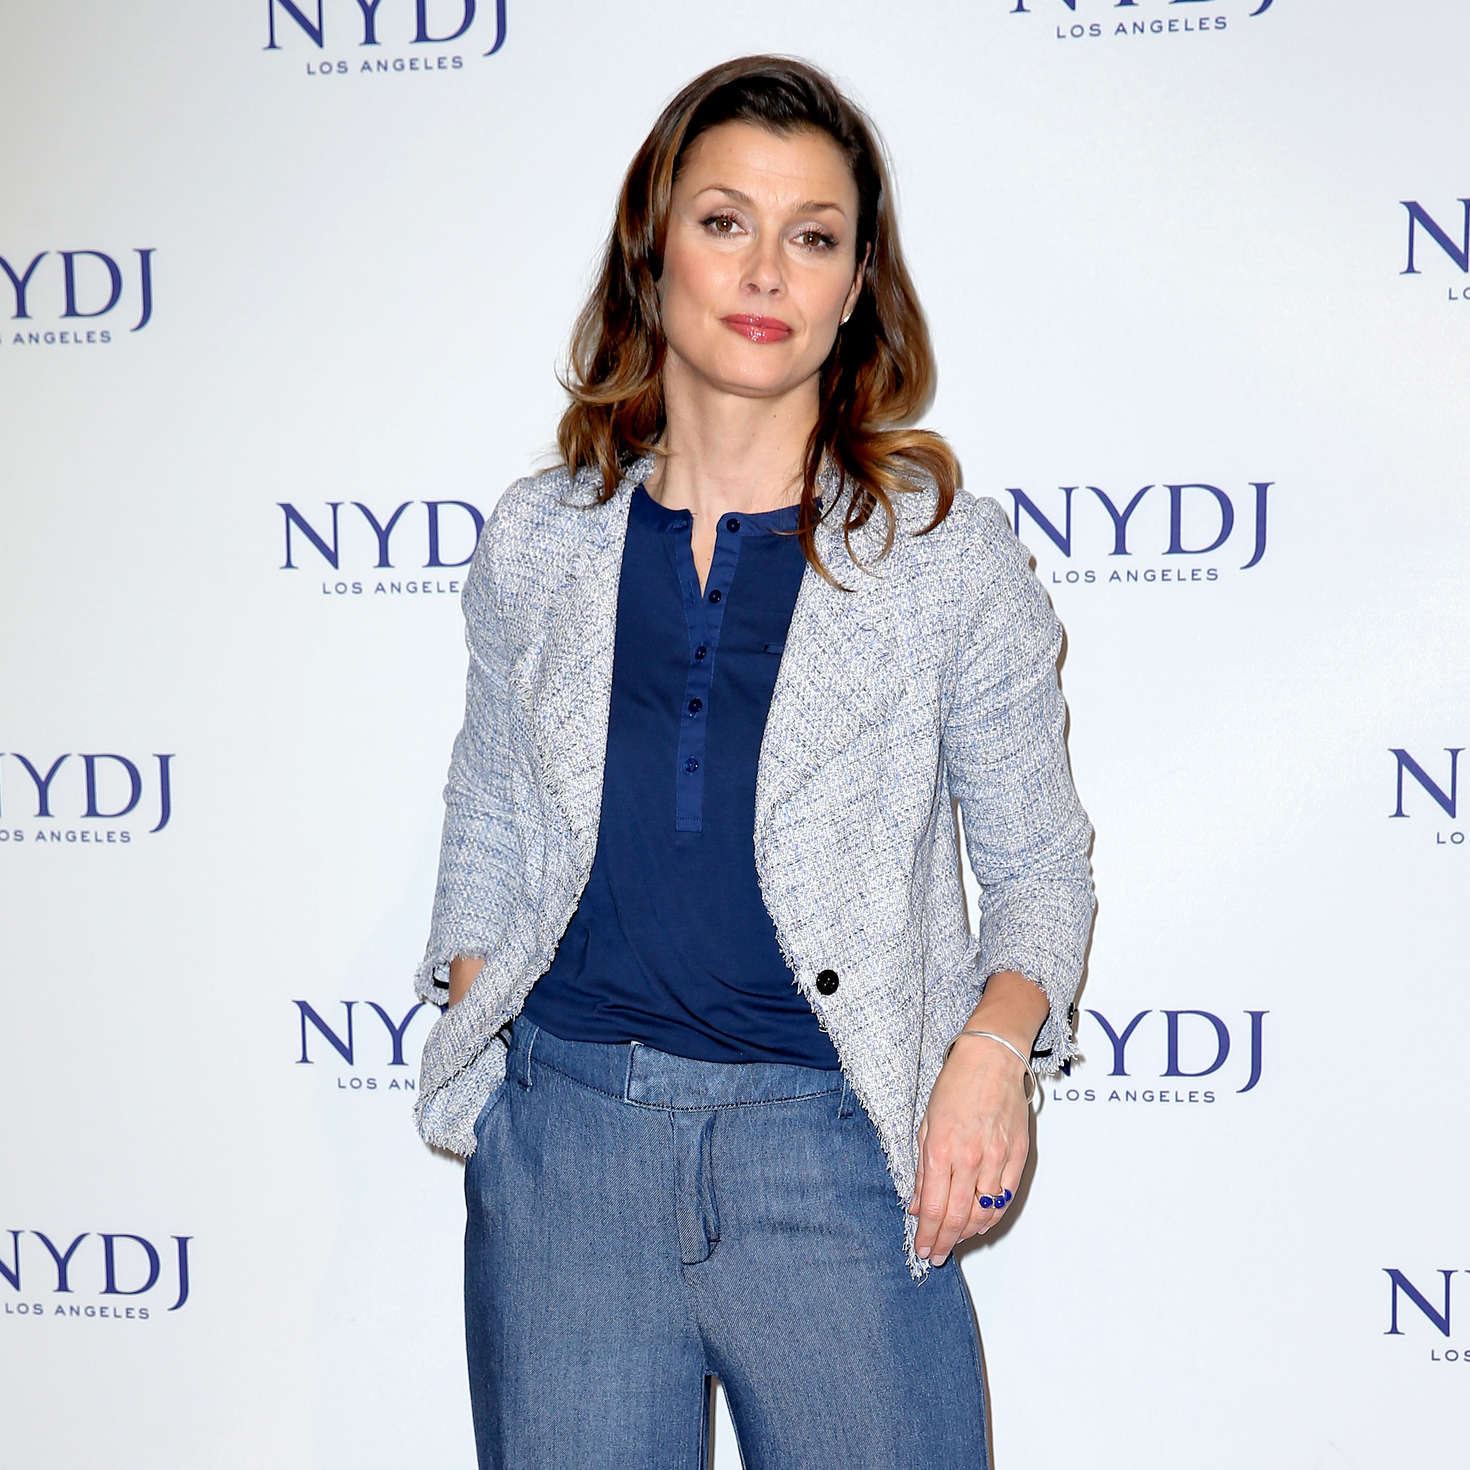 Bridget Moynahan: NYDJ 2016 'Fit To Be' Campaign In NYC